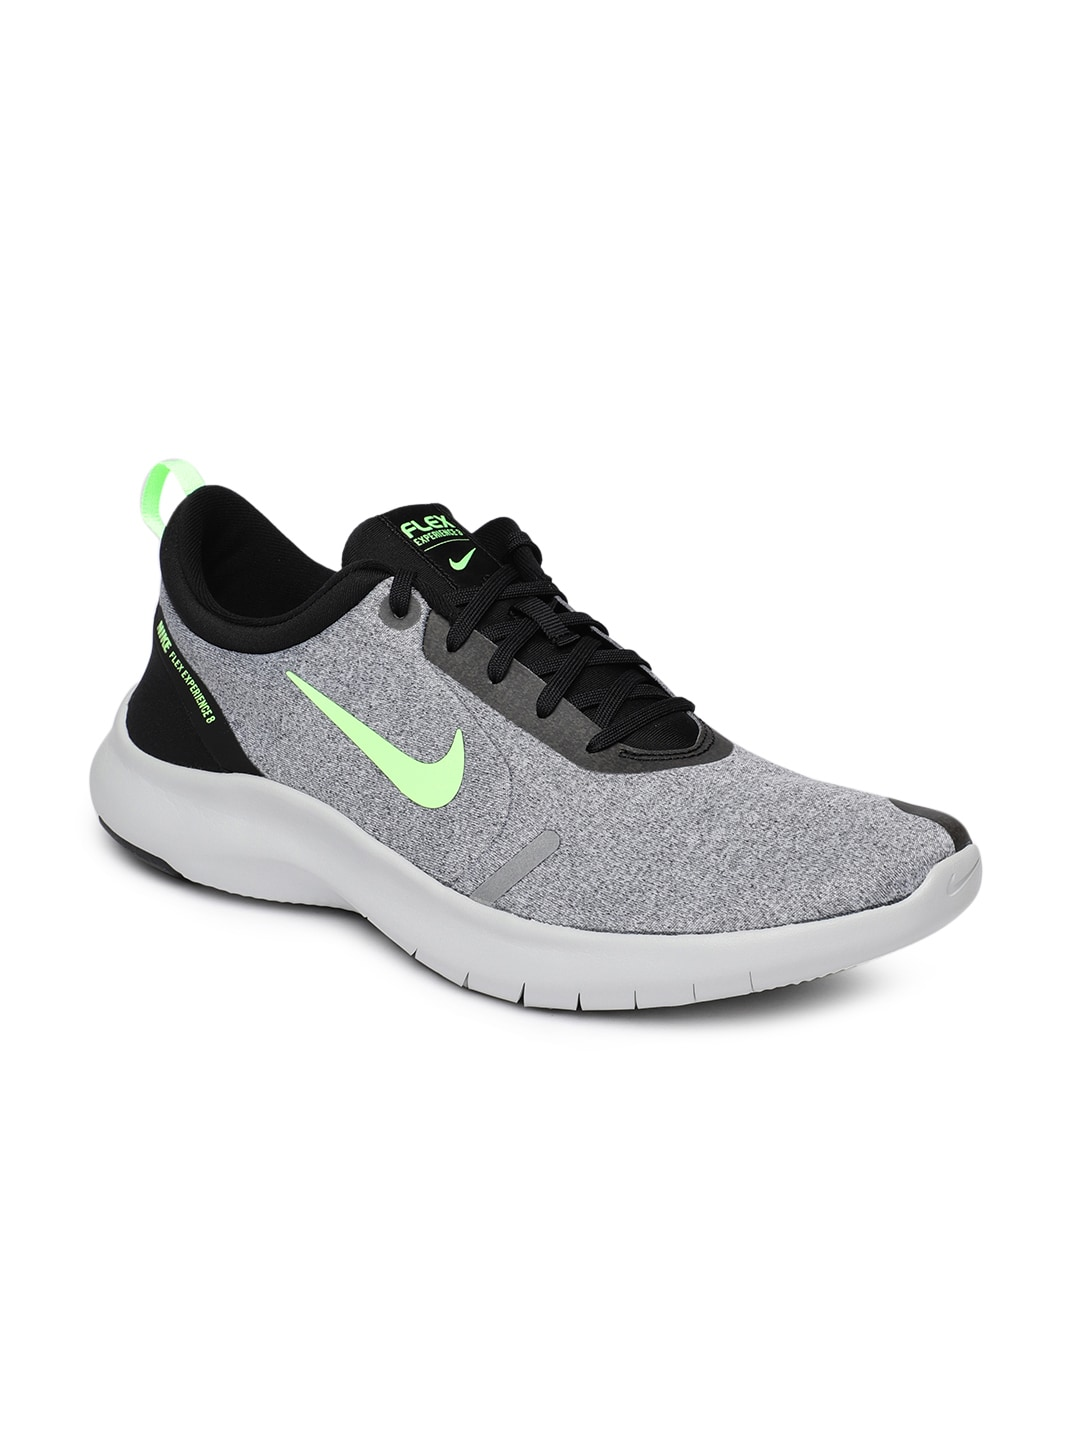 b2a4b2b22813 Nike Grey Green - Buy Nike Grey Green online in India